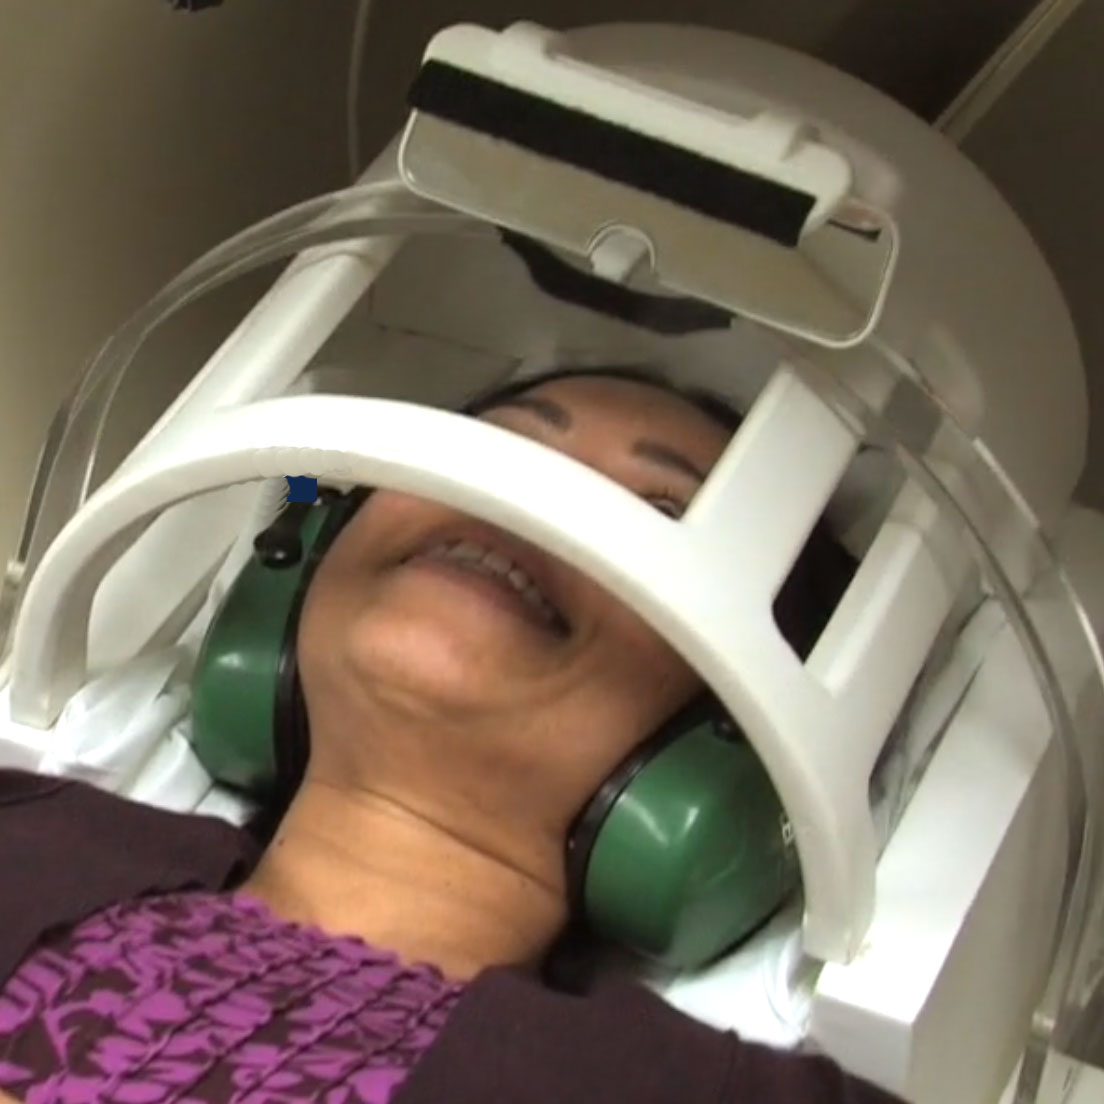 head placed in a brace in an MRI machine